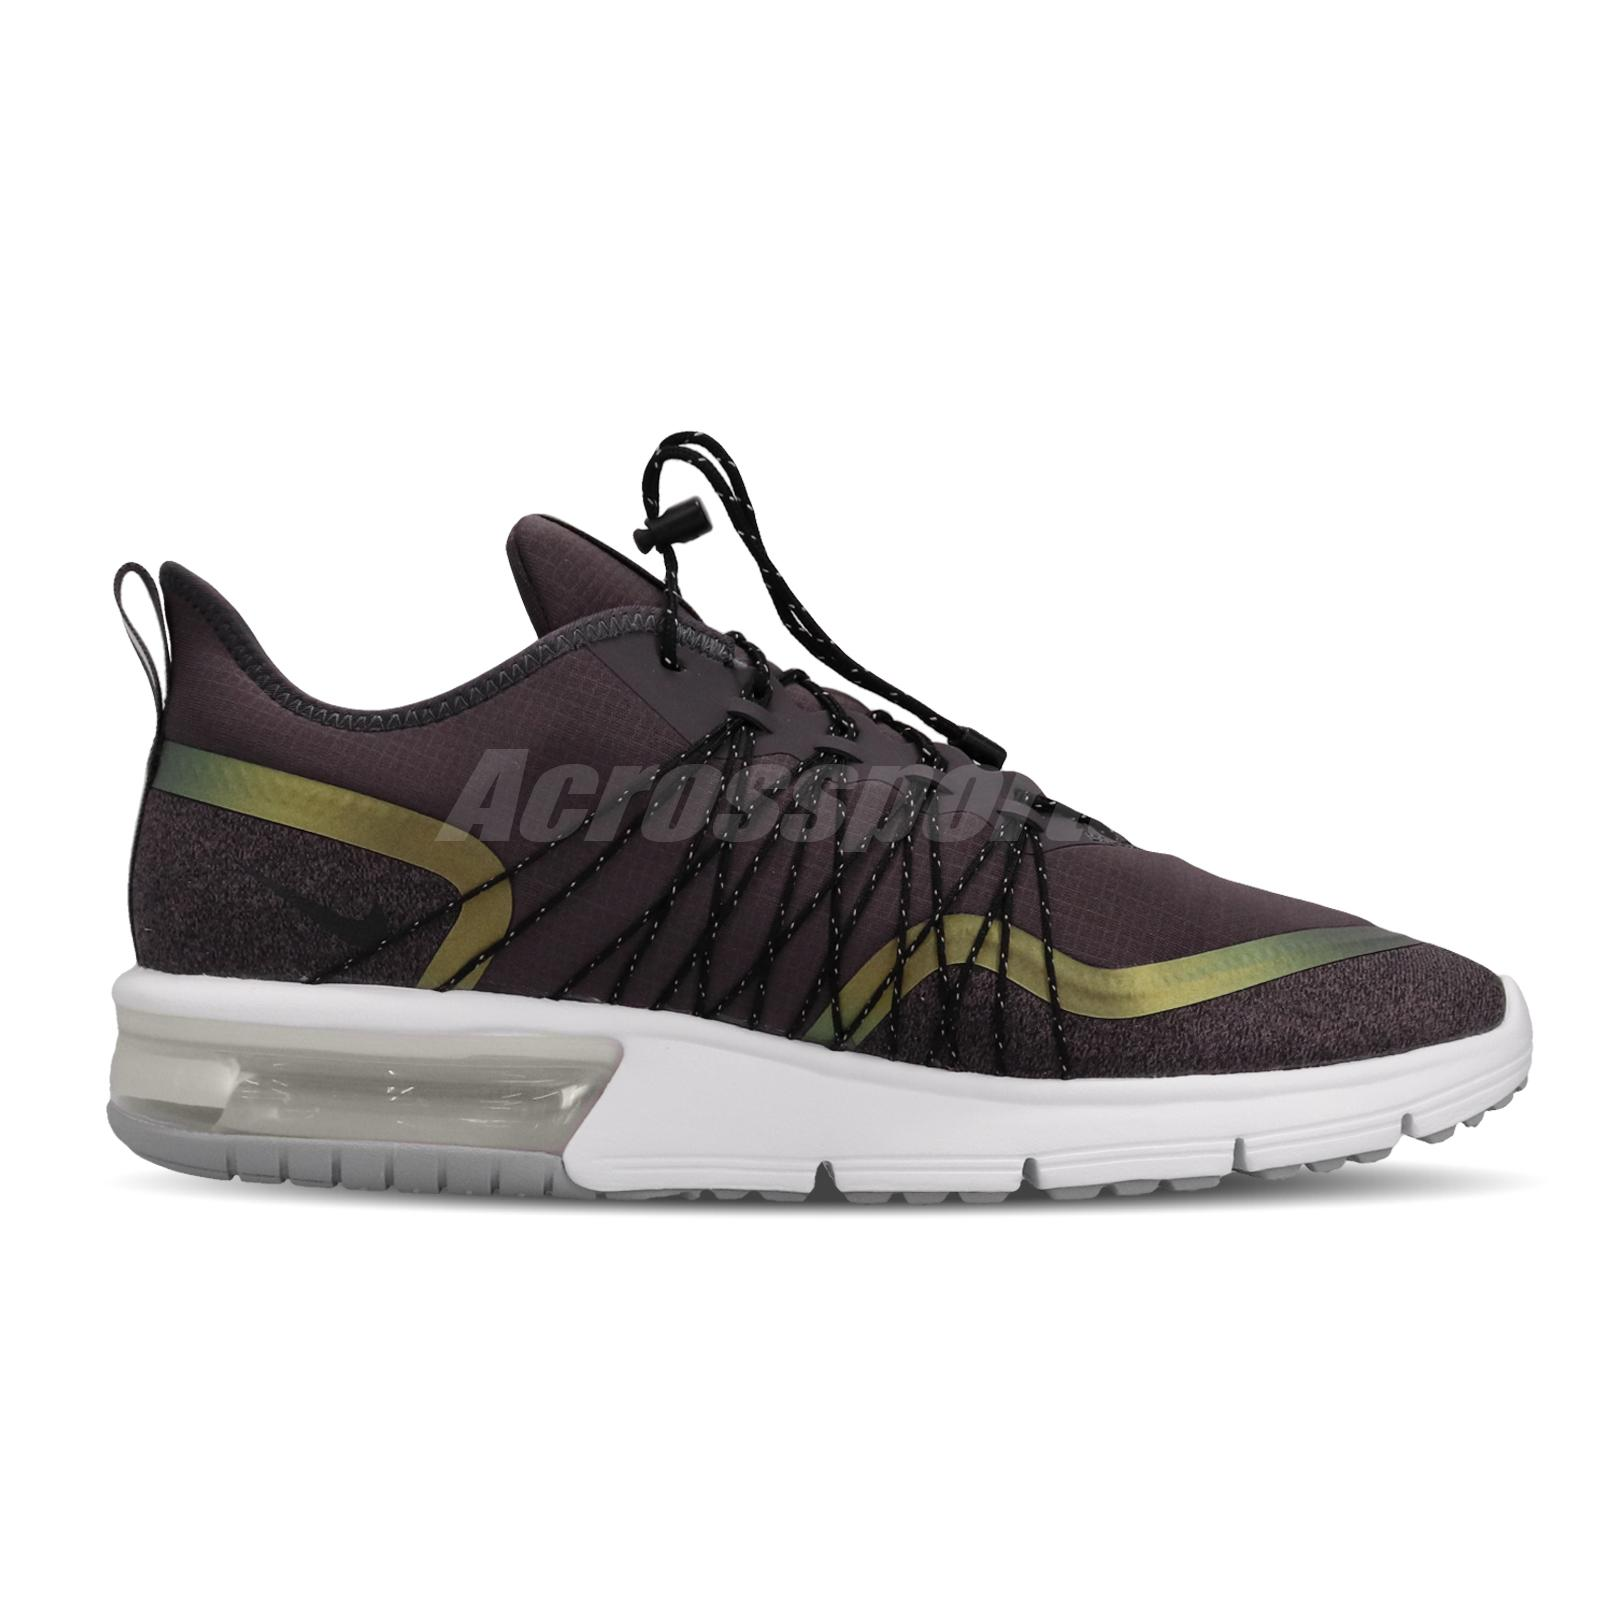 Details about Nike Air Max Sequent 4 Utility Grey Volt Glow Men Running Shoes AV3236 004